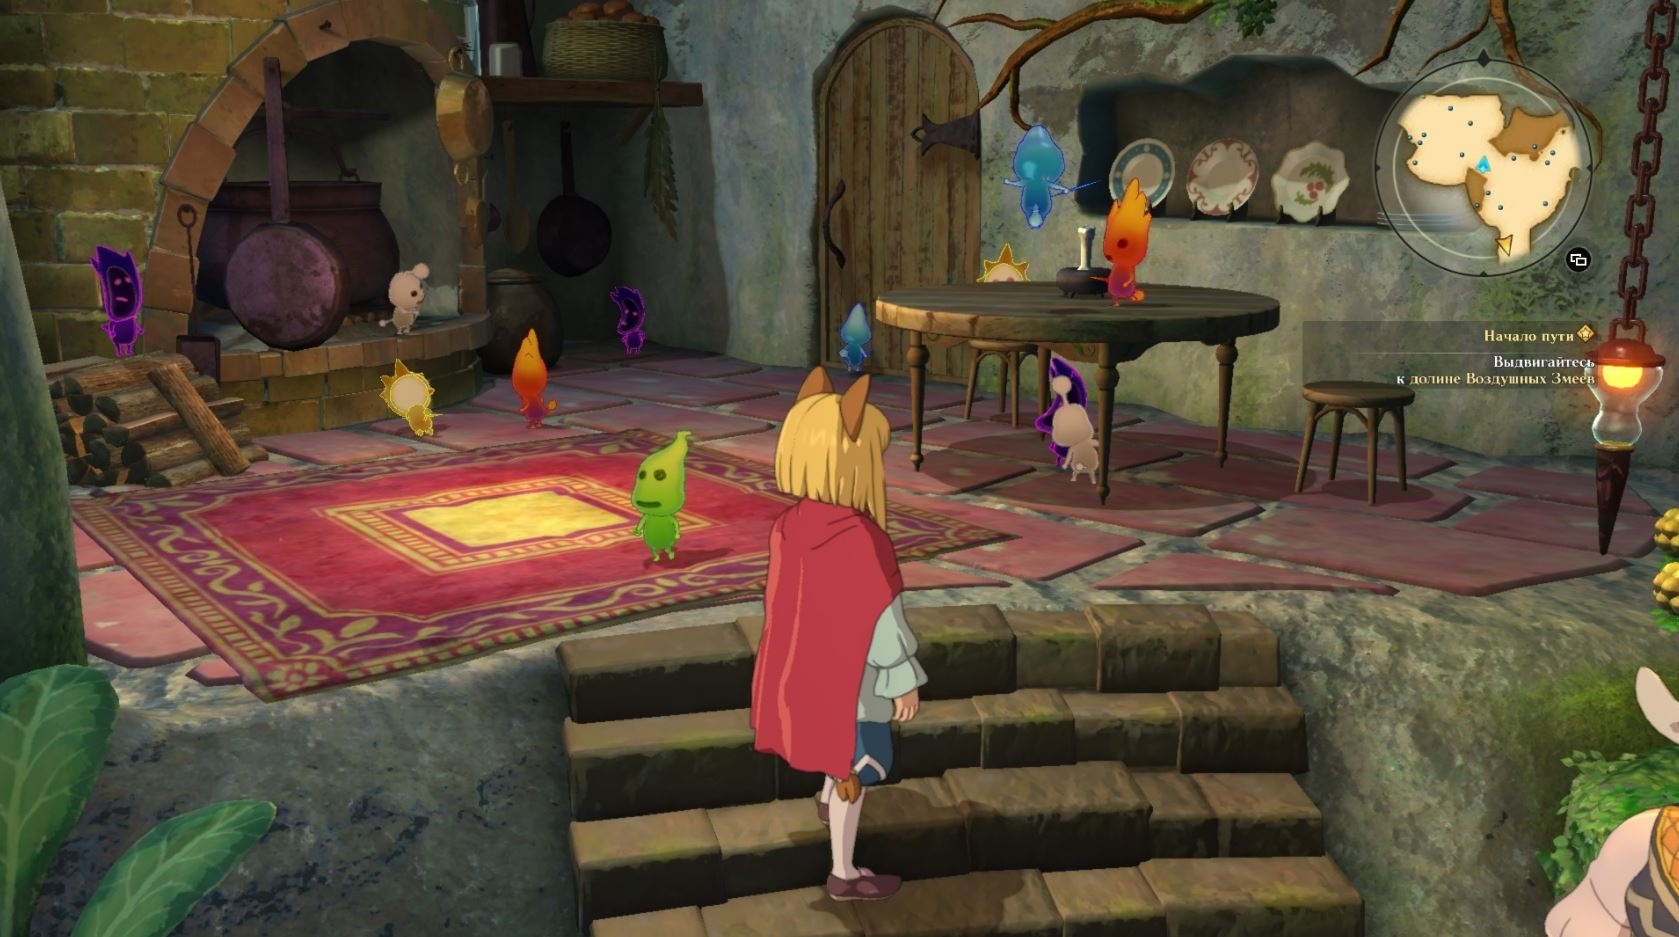 Скриншот из игры Ni no Kuni II: Revenant Kingdom под номером 17